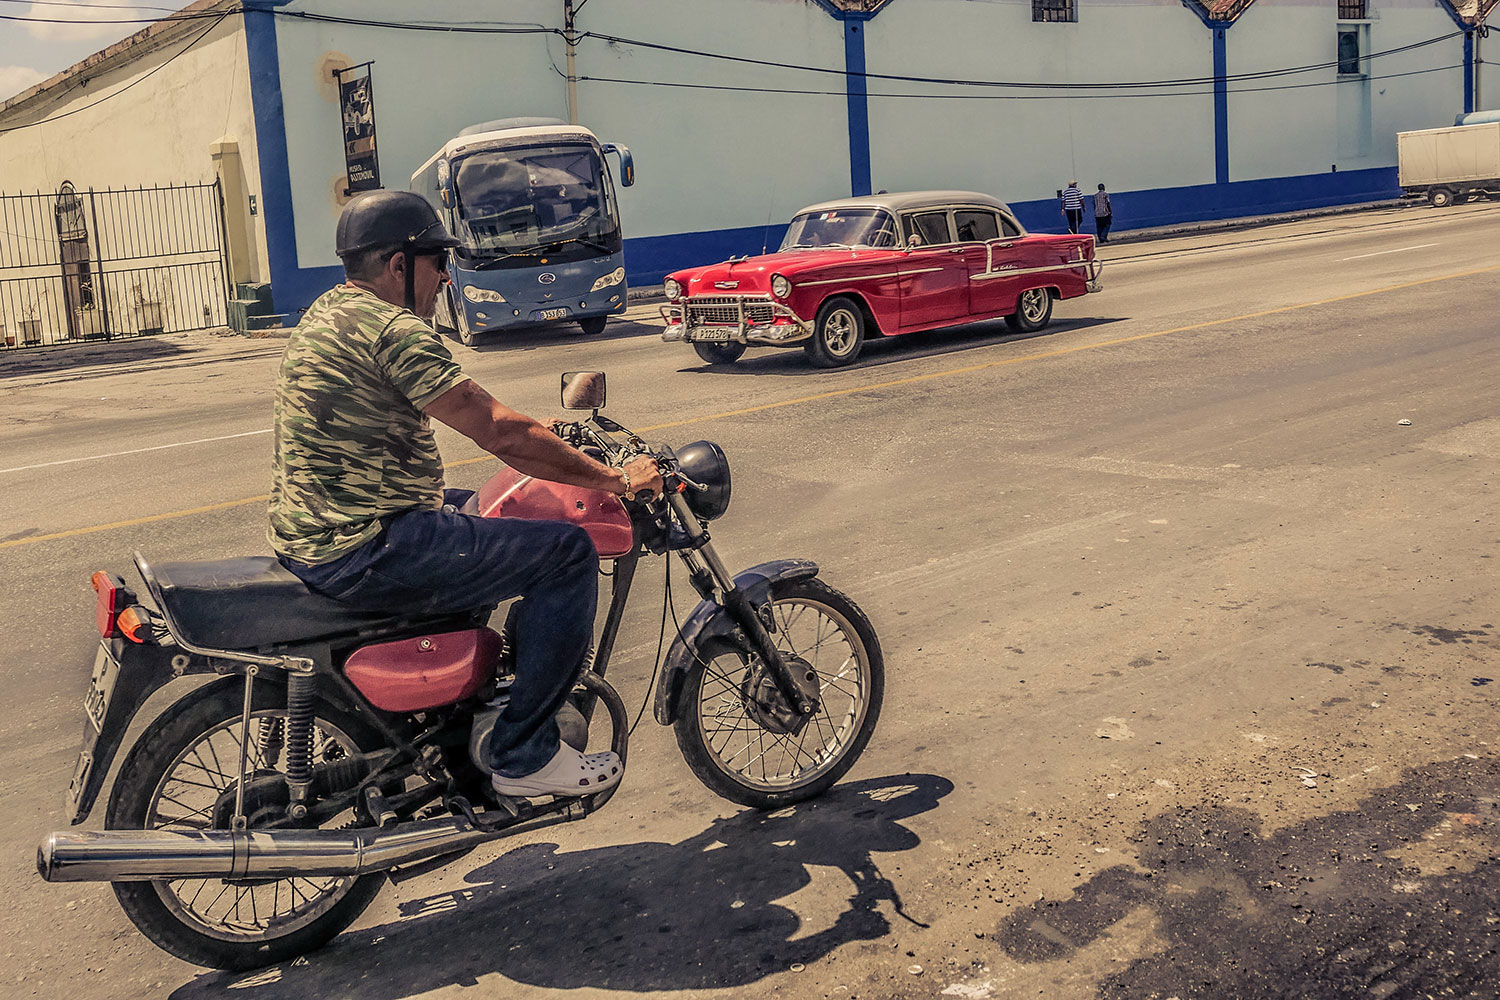 Cuban guy in Resurgence Gears, Pekev® Lite, Dark Blue motorcycle jeans Australia - Picture by Dean Saffron